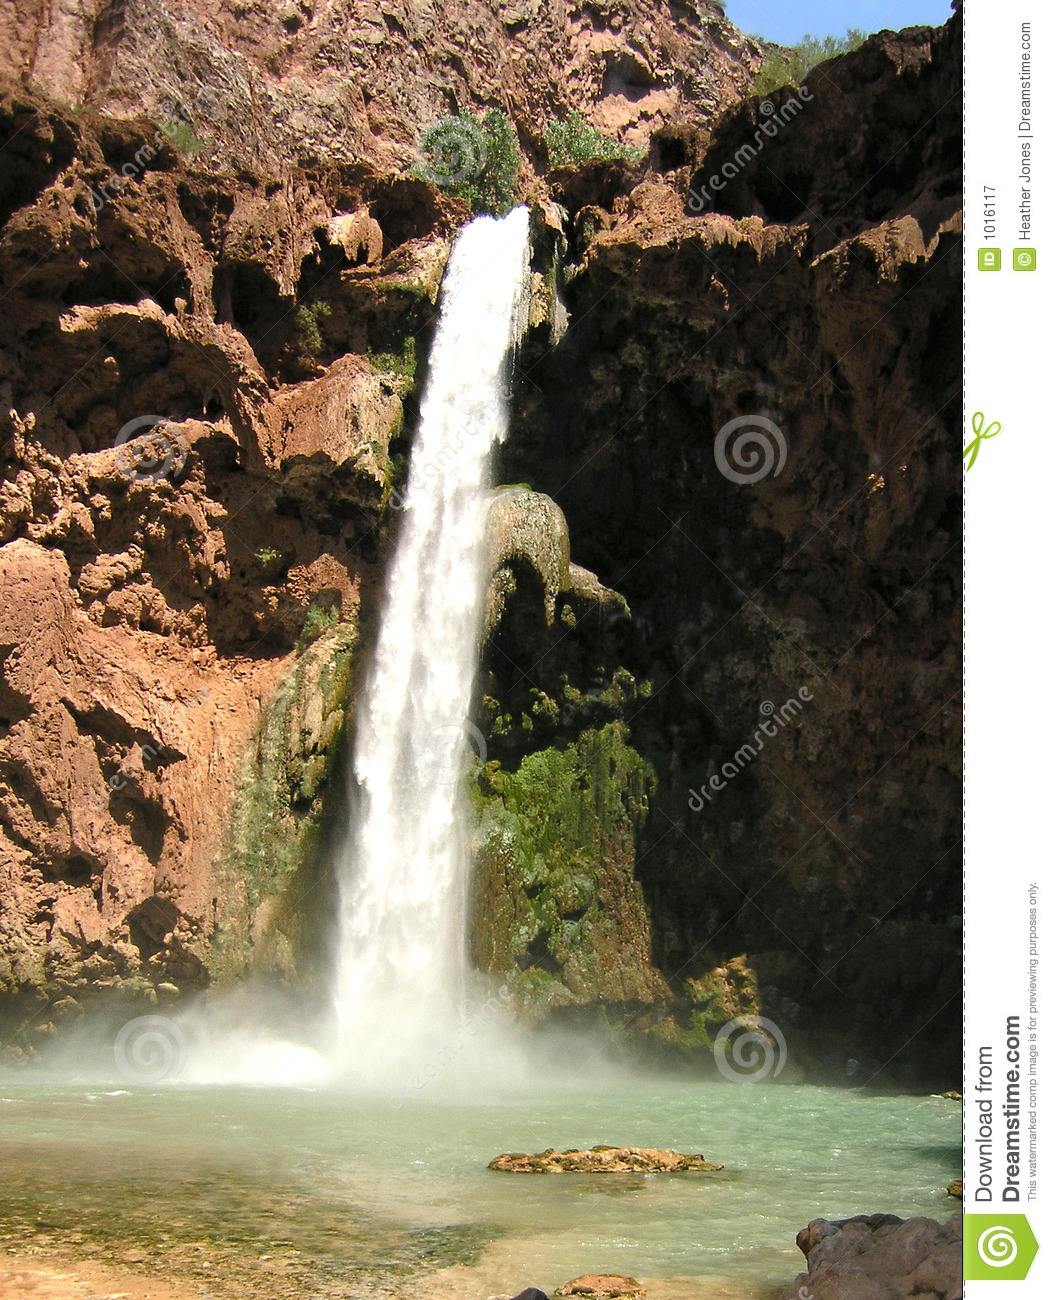 Waterval, Arizona